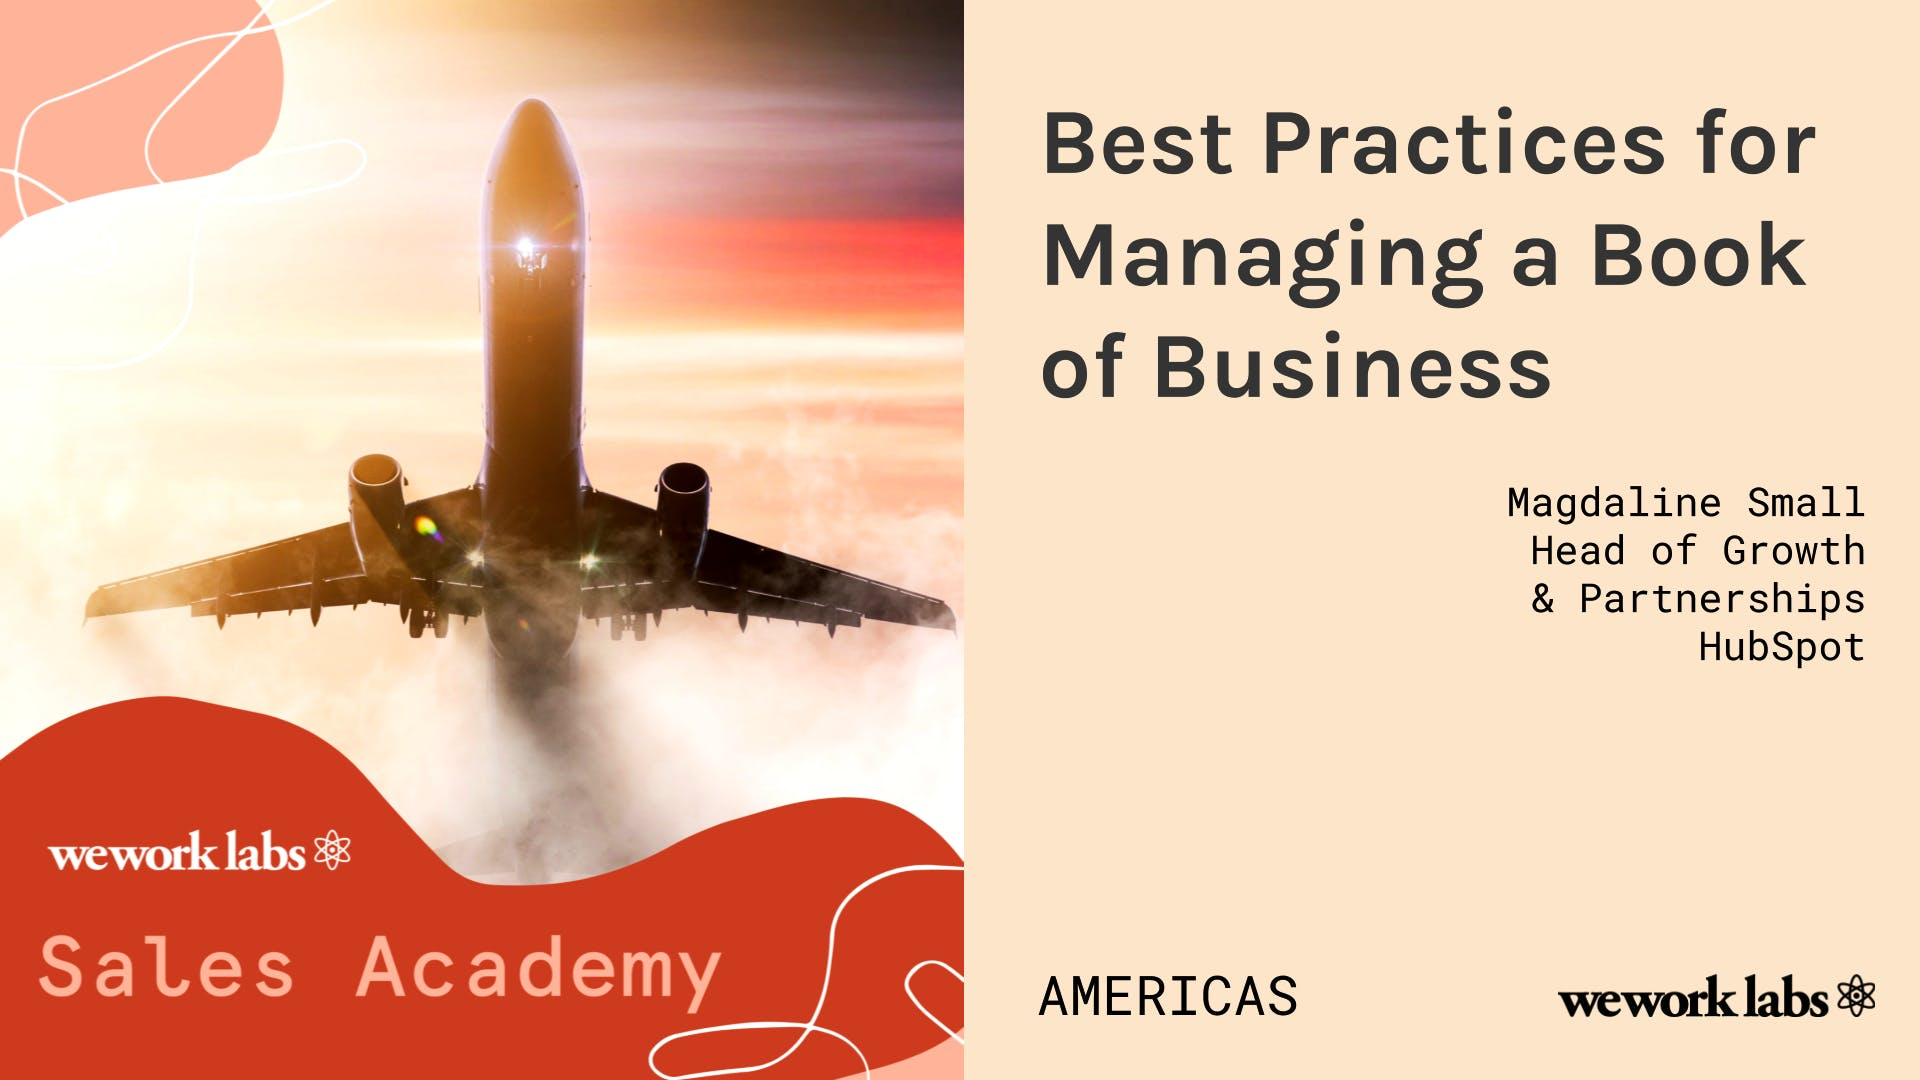 Sales Academy (Americas): Best Practices for Managing a Book Of Business